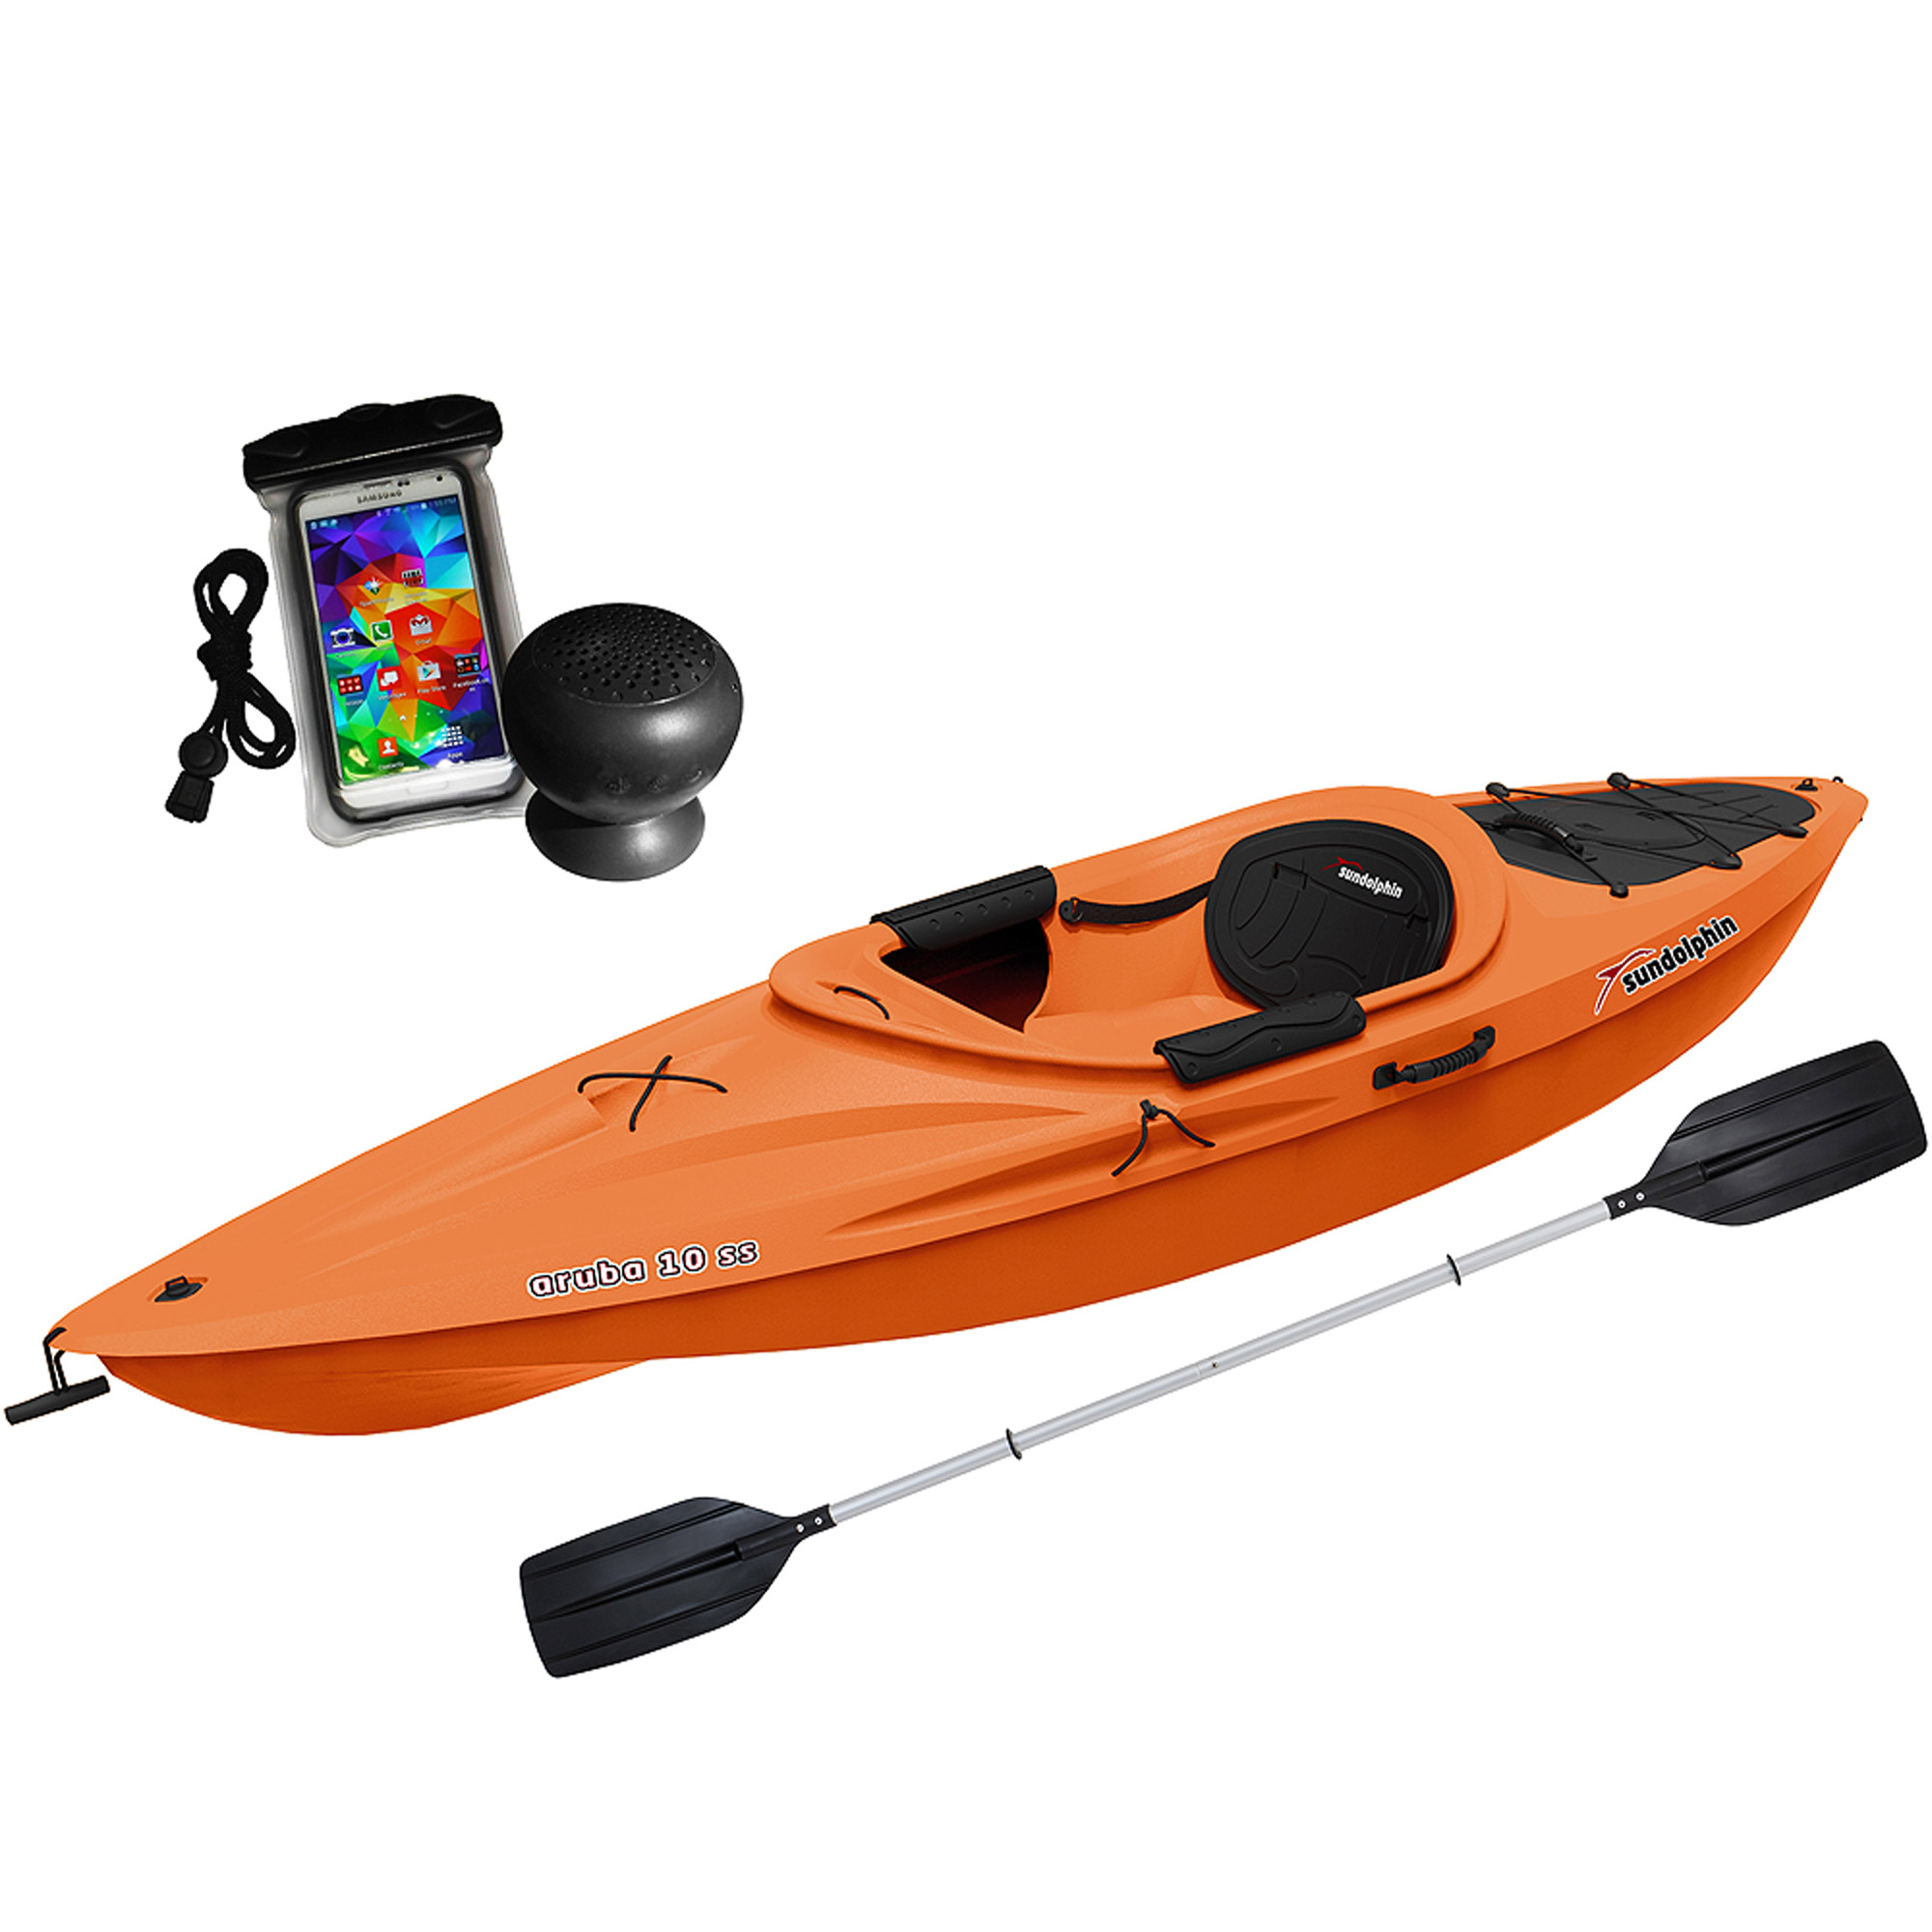 Sun Dolphin Aruba 10 SS with Speaker and Bag, Paddle Included